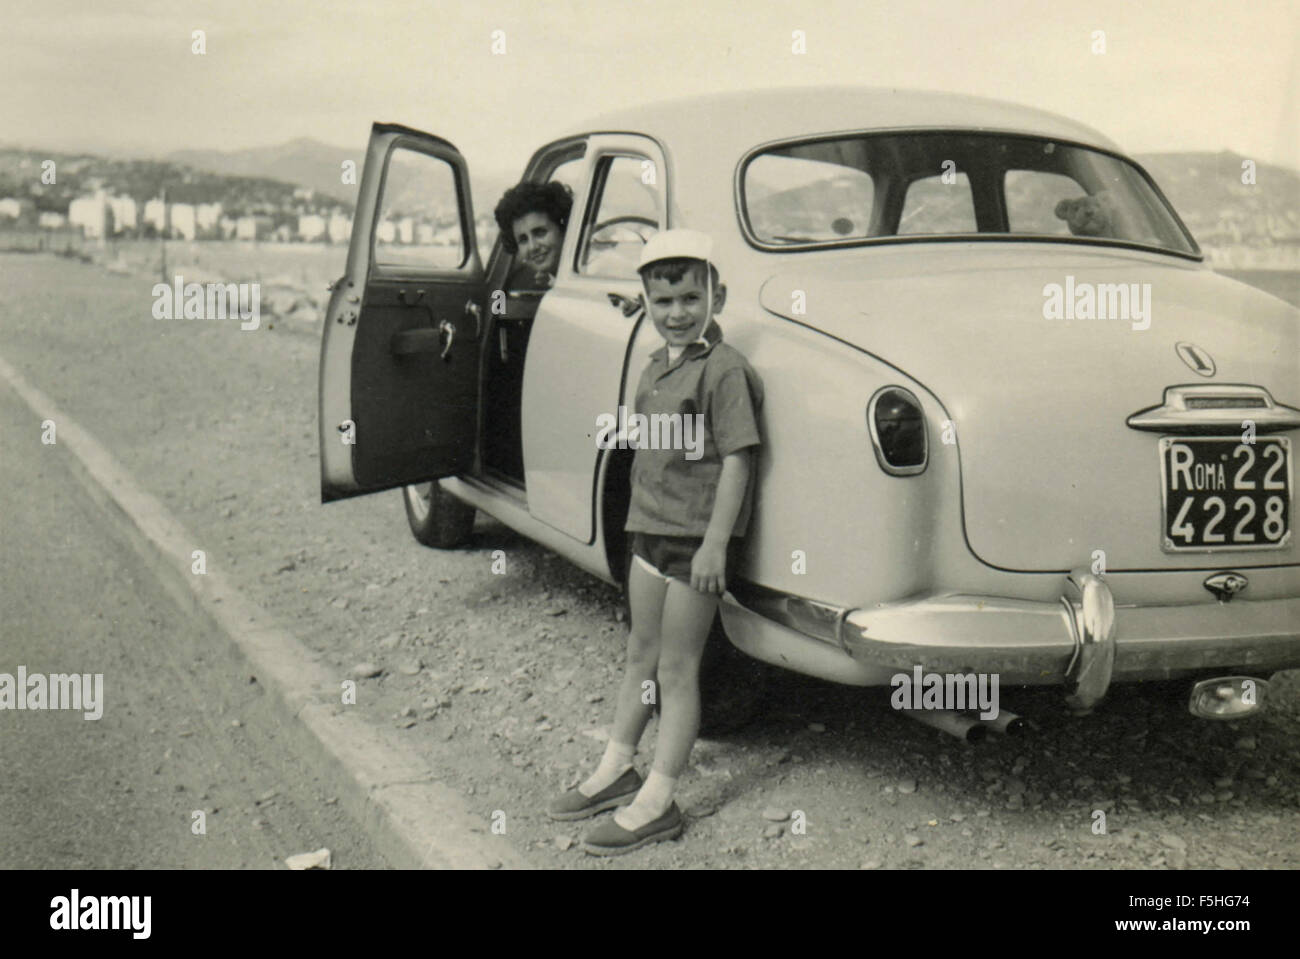 A woman and a child next to a car Lancia Appia, Italy - Stock Image